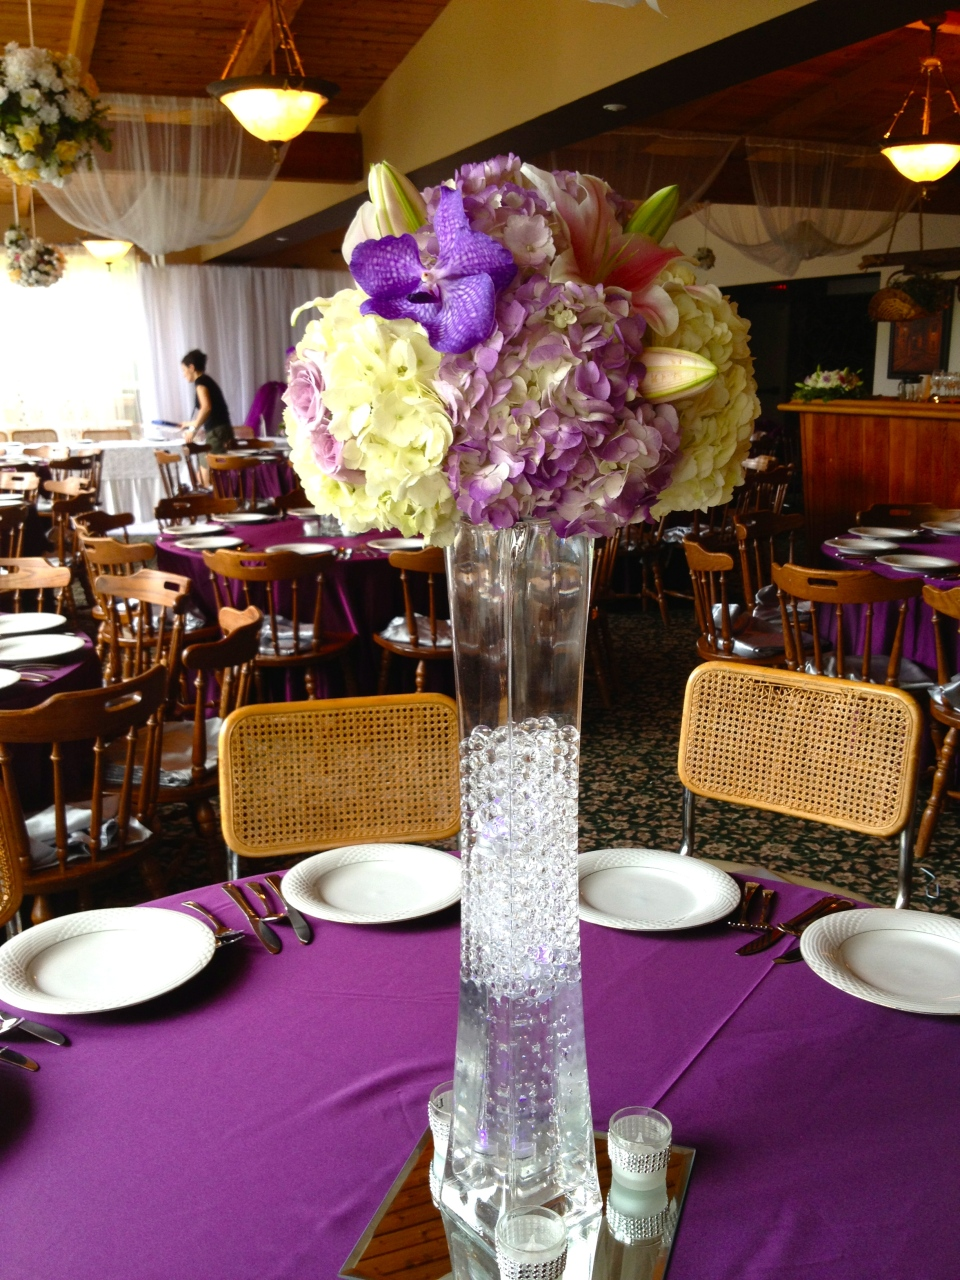 Tall purple and pink centerpiece with hydrangea, lilies and vanda orchids